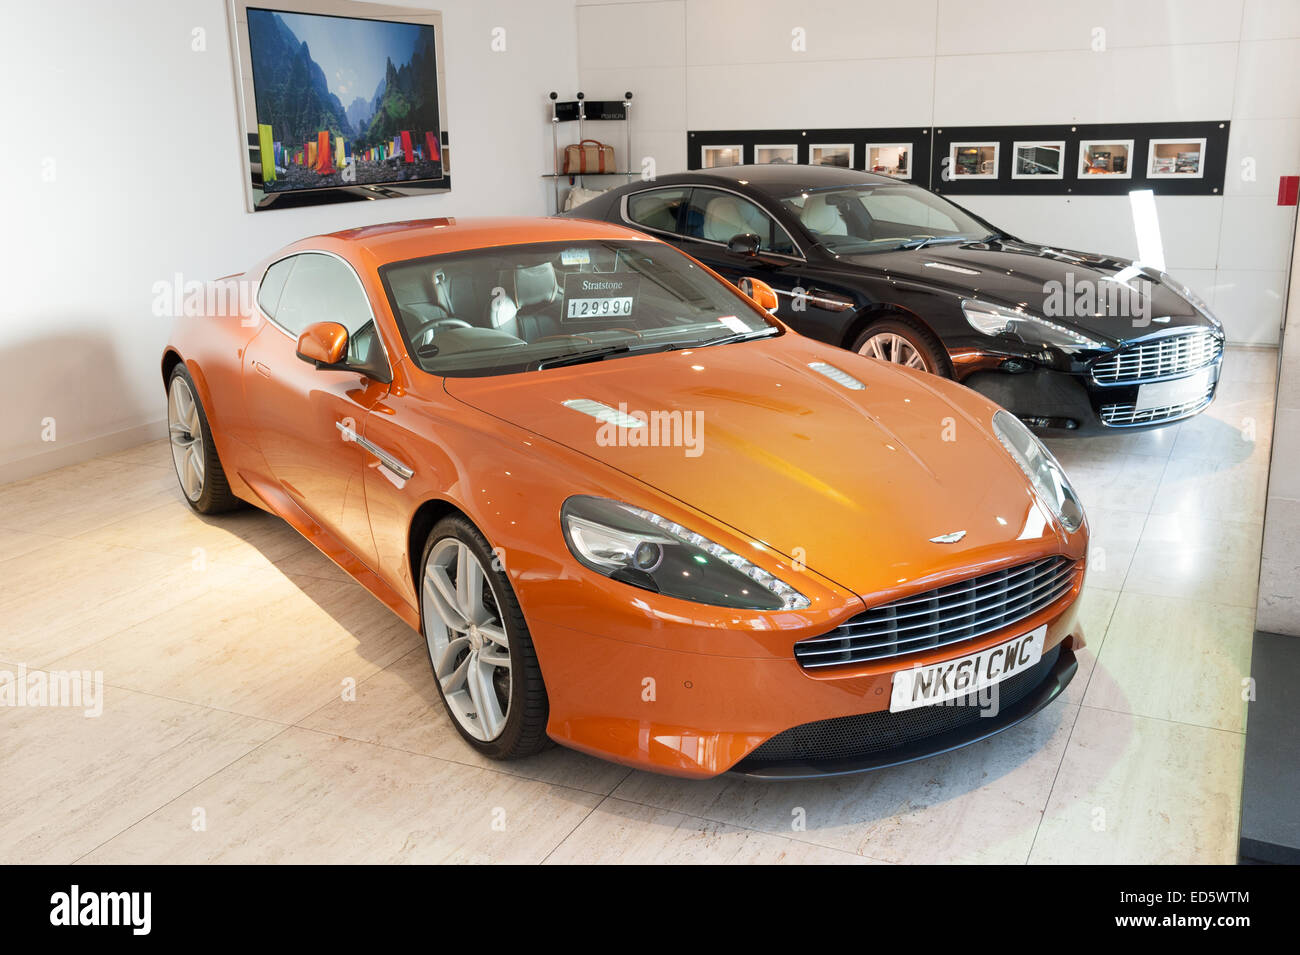 Stratstone Mayfair Aston Martin Dealership Stock Photos Stratstone - Aston martin dealerships